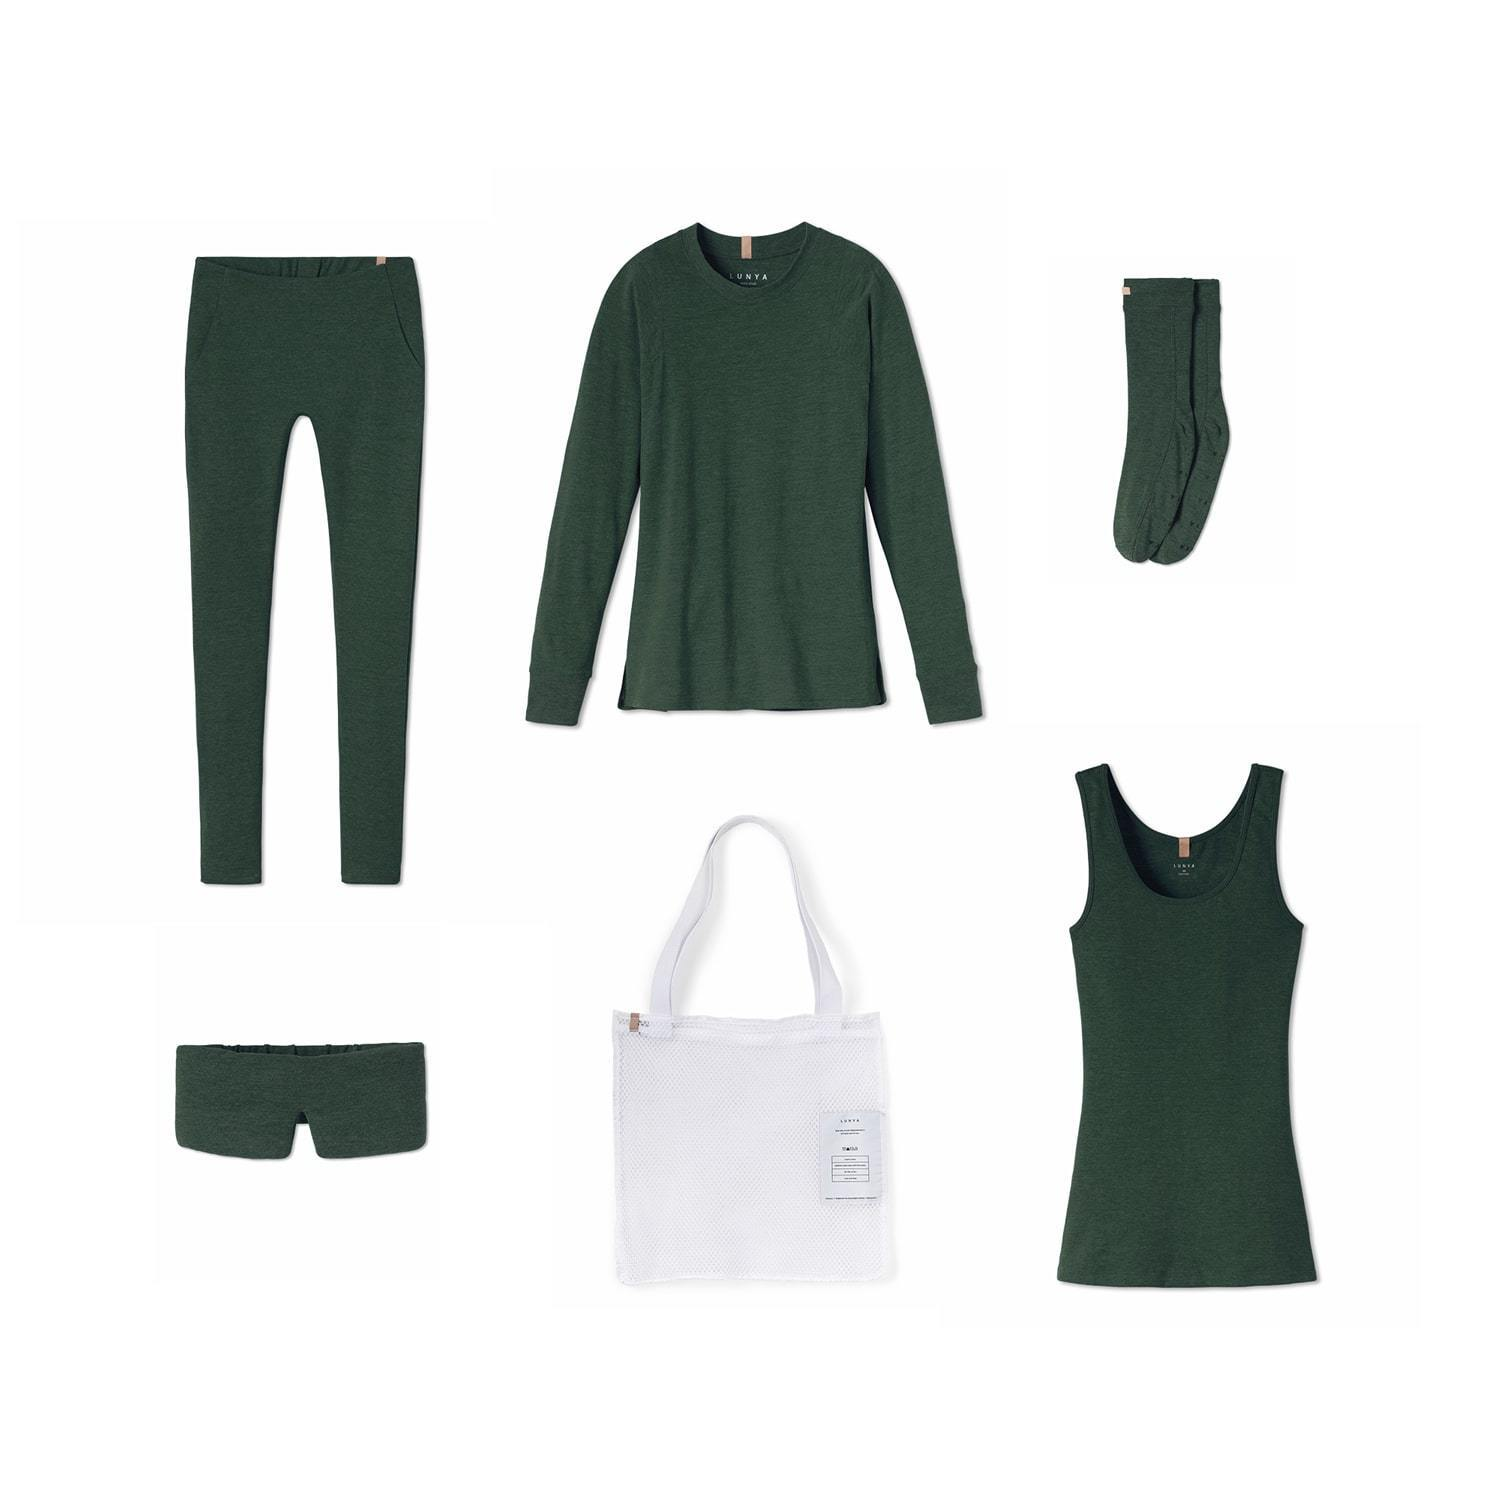 Lunya Sleepwear Restore Pima Travel Kit - #Emerald